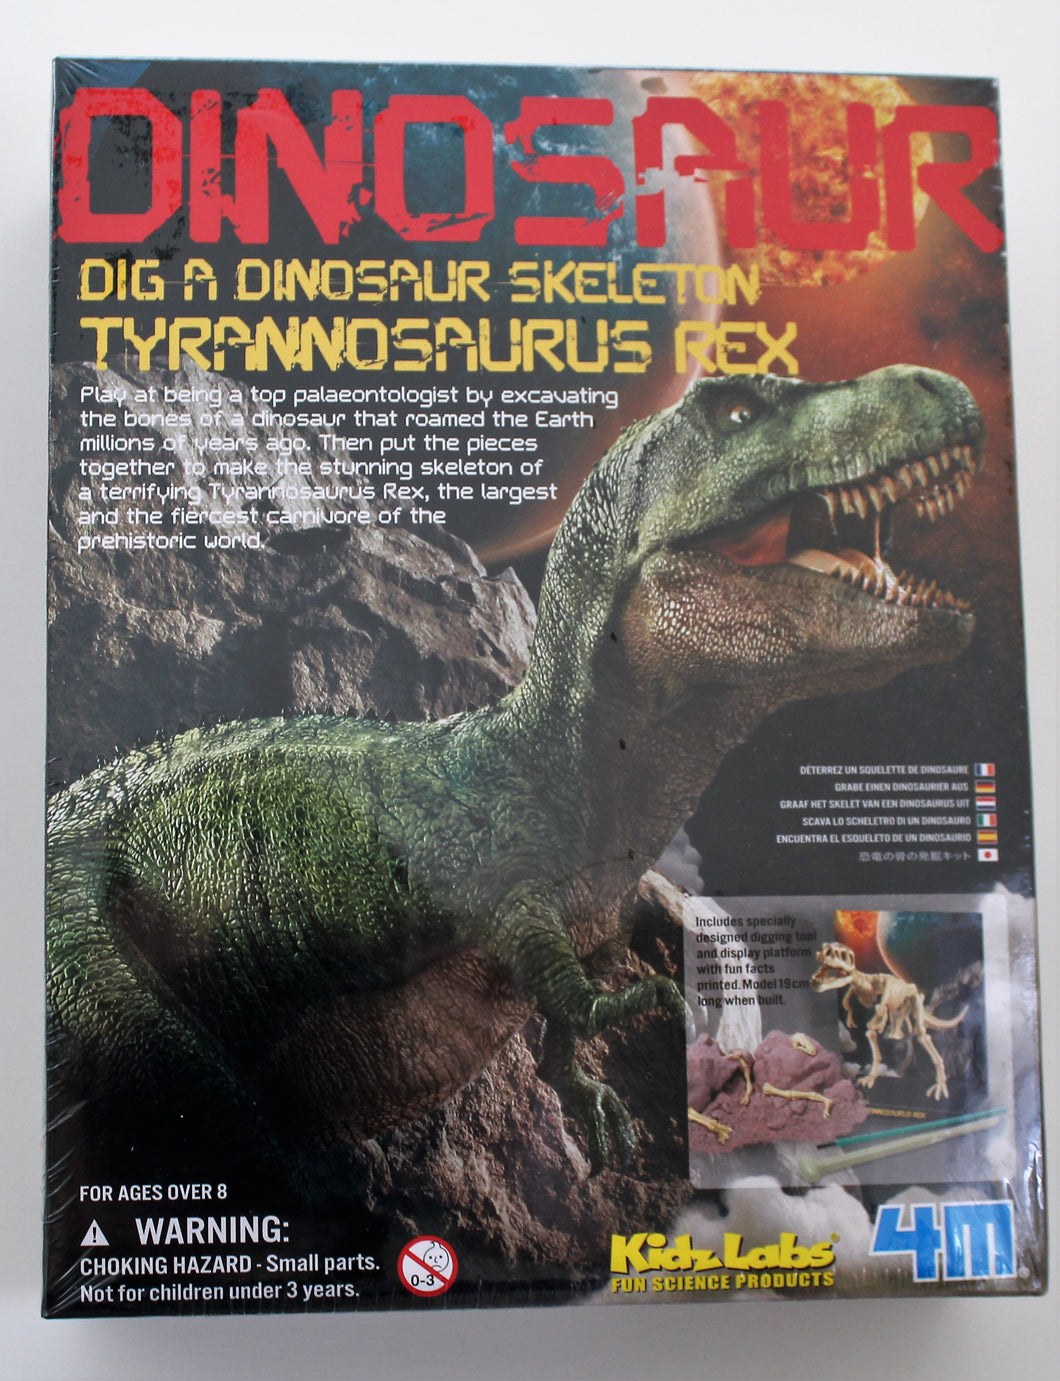 Dinosaur Excavation Kit educational products for primary school children